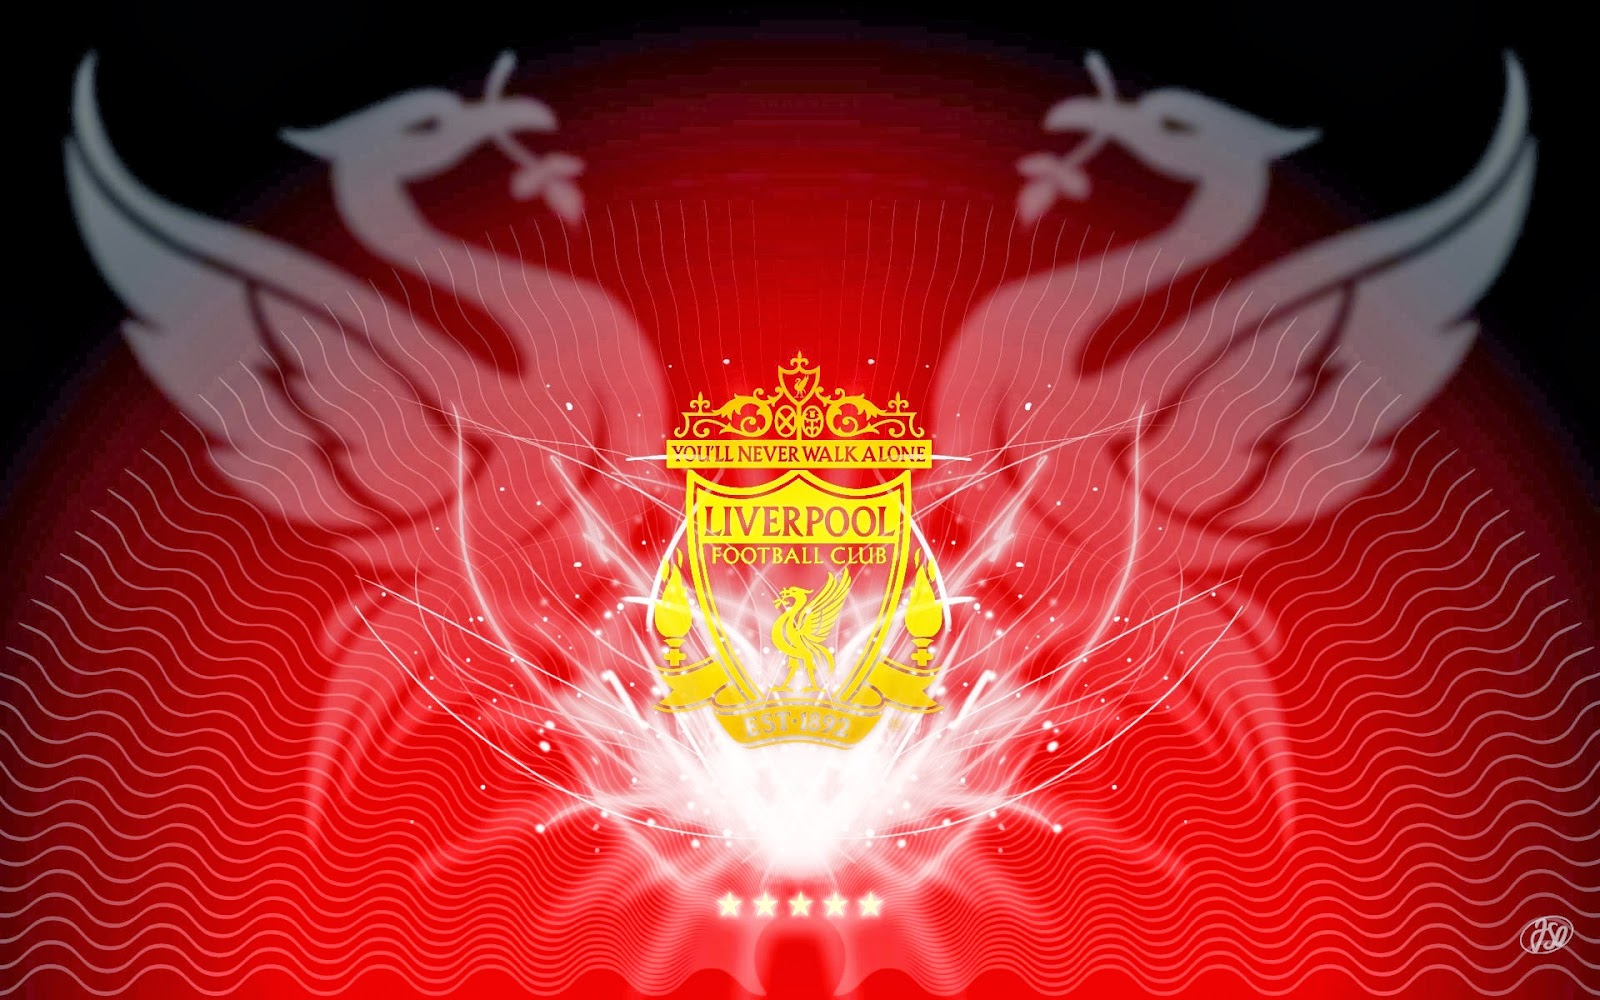 fc liverpool 1600 x 1000 hd wallpaper - download « top hd wallpapers